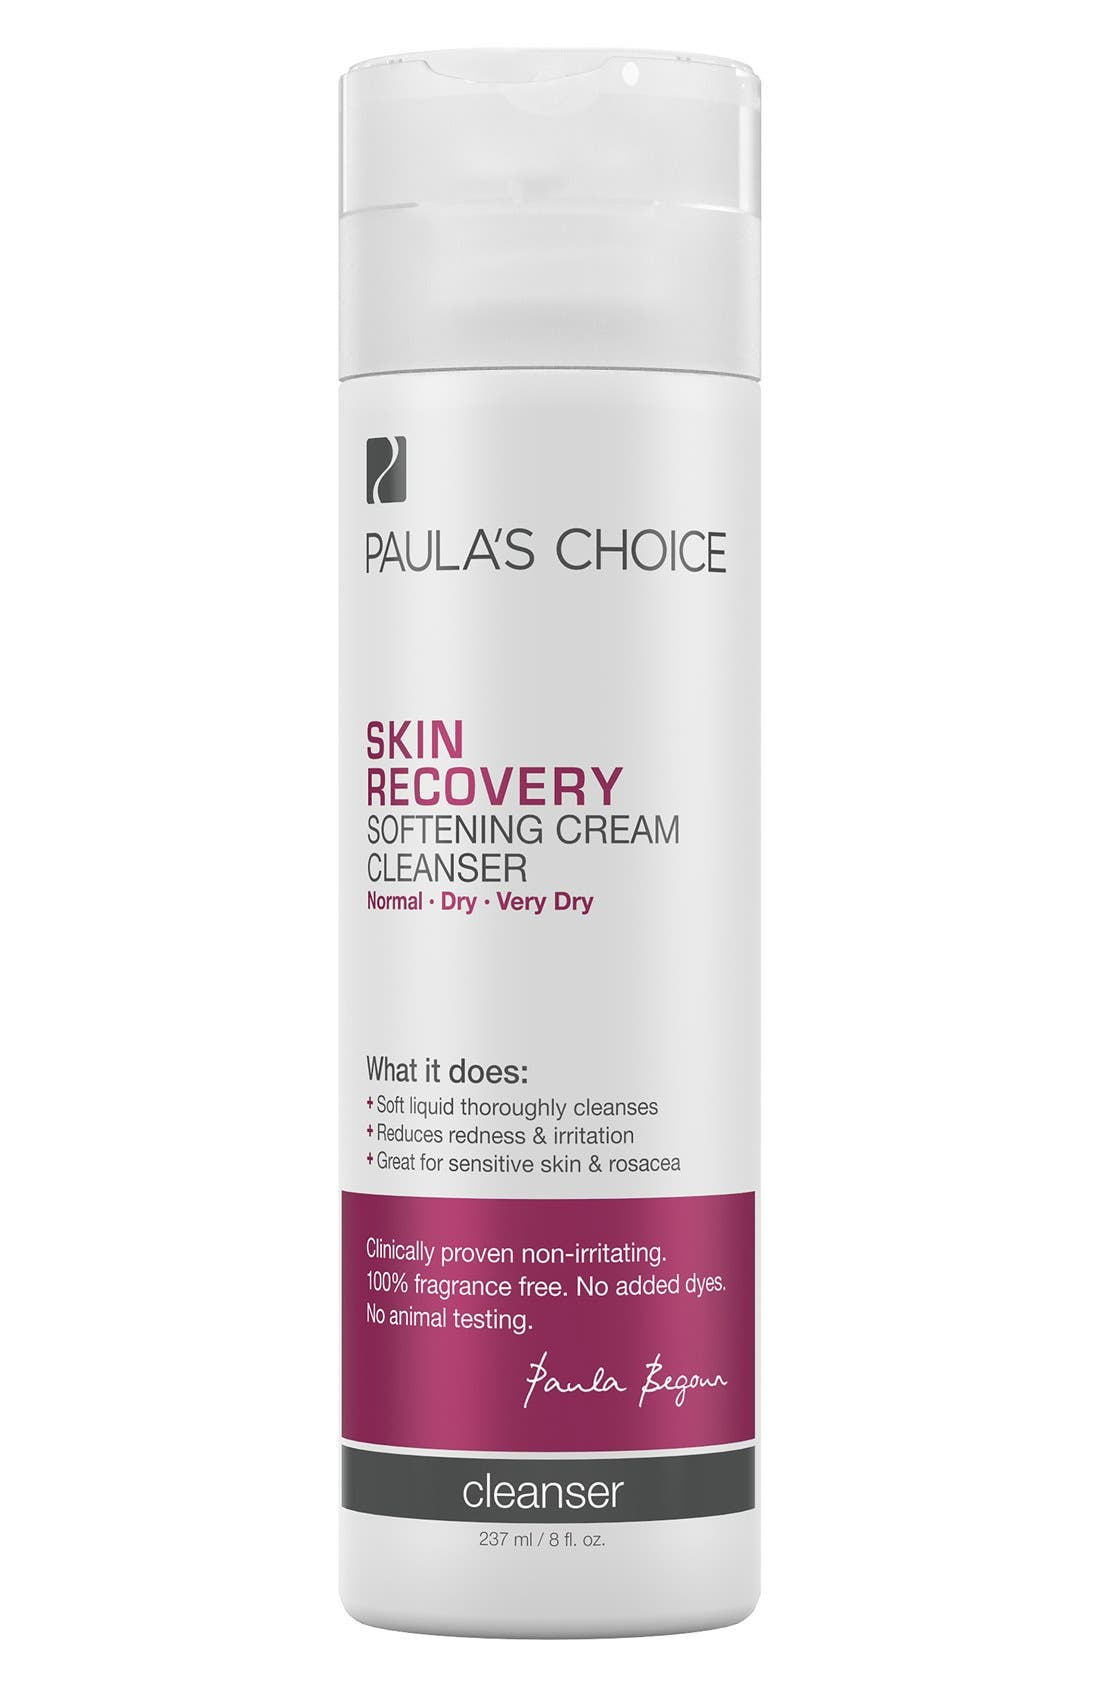 Paula's Choice Skin Recovery Softening Cream Cleanser